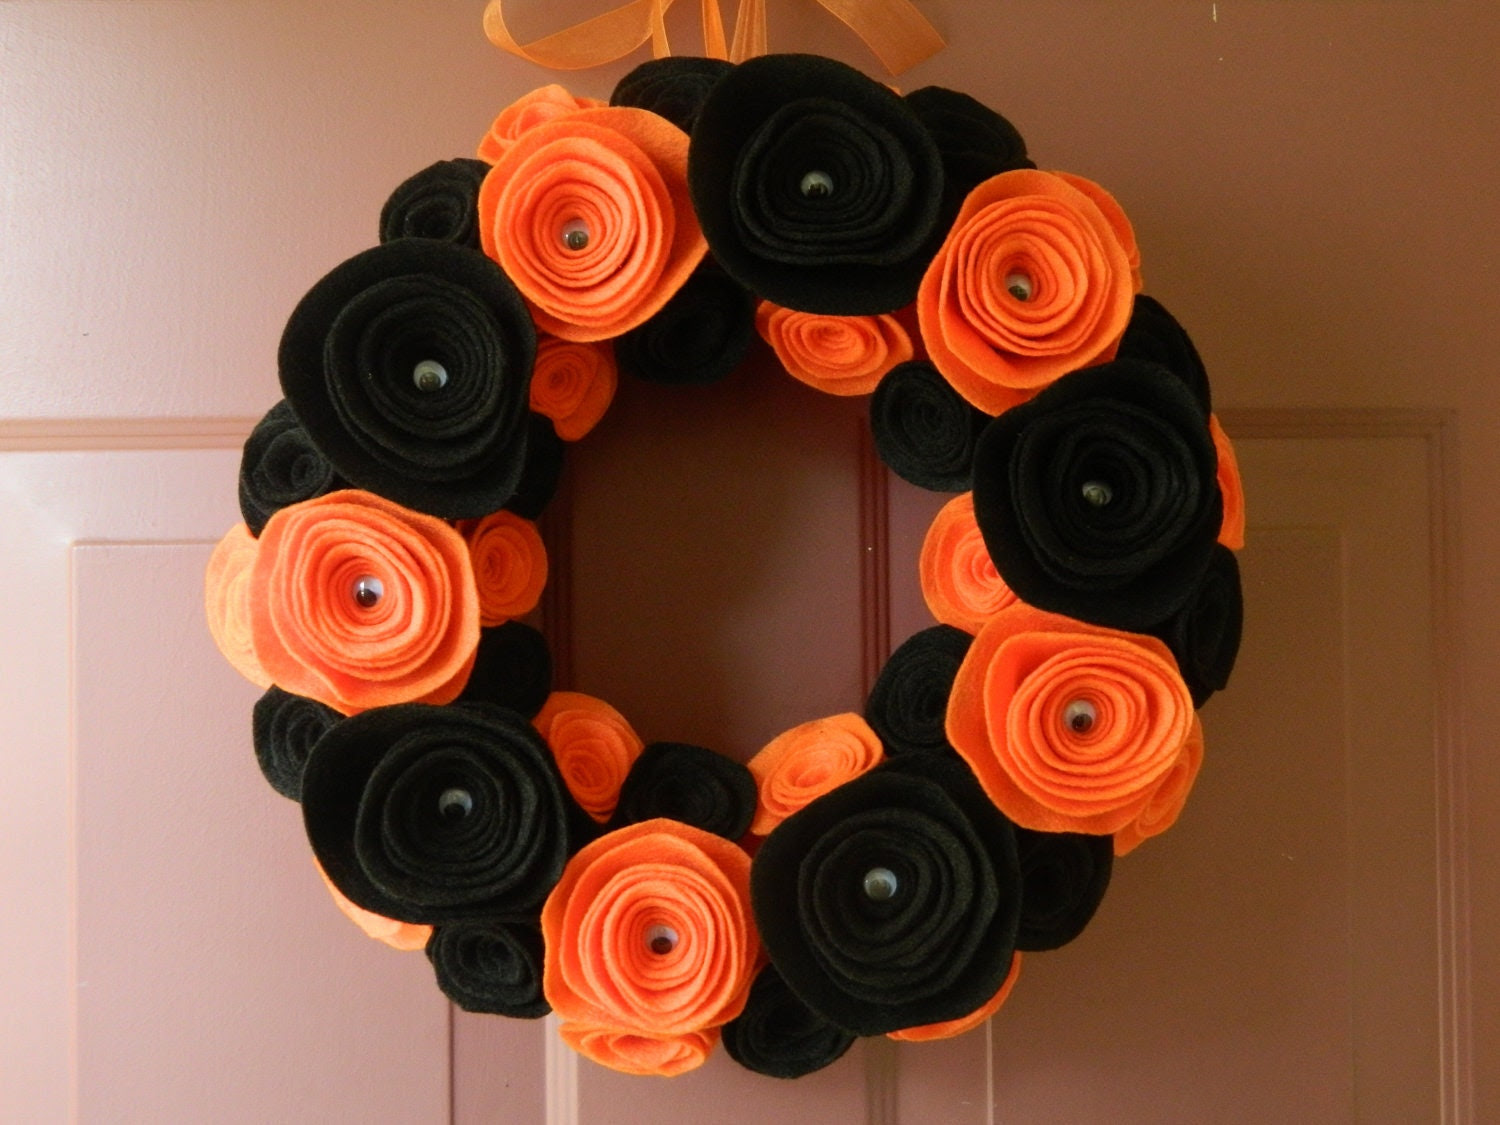 Halloween Wreath - Black and Orange Felt Flower Wreath with Google Eye Centers on the Large Flowers - 12 inch